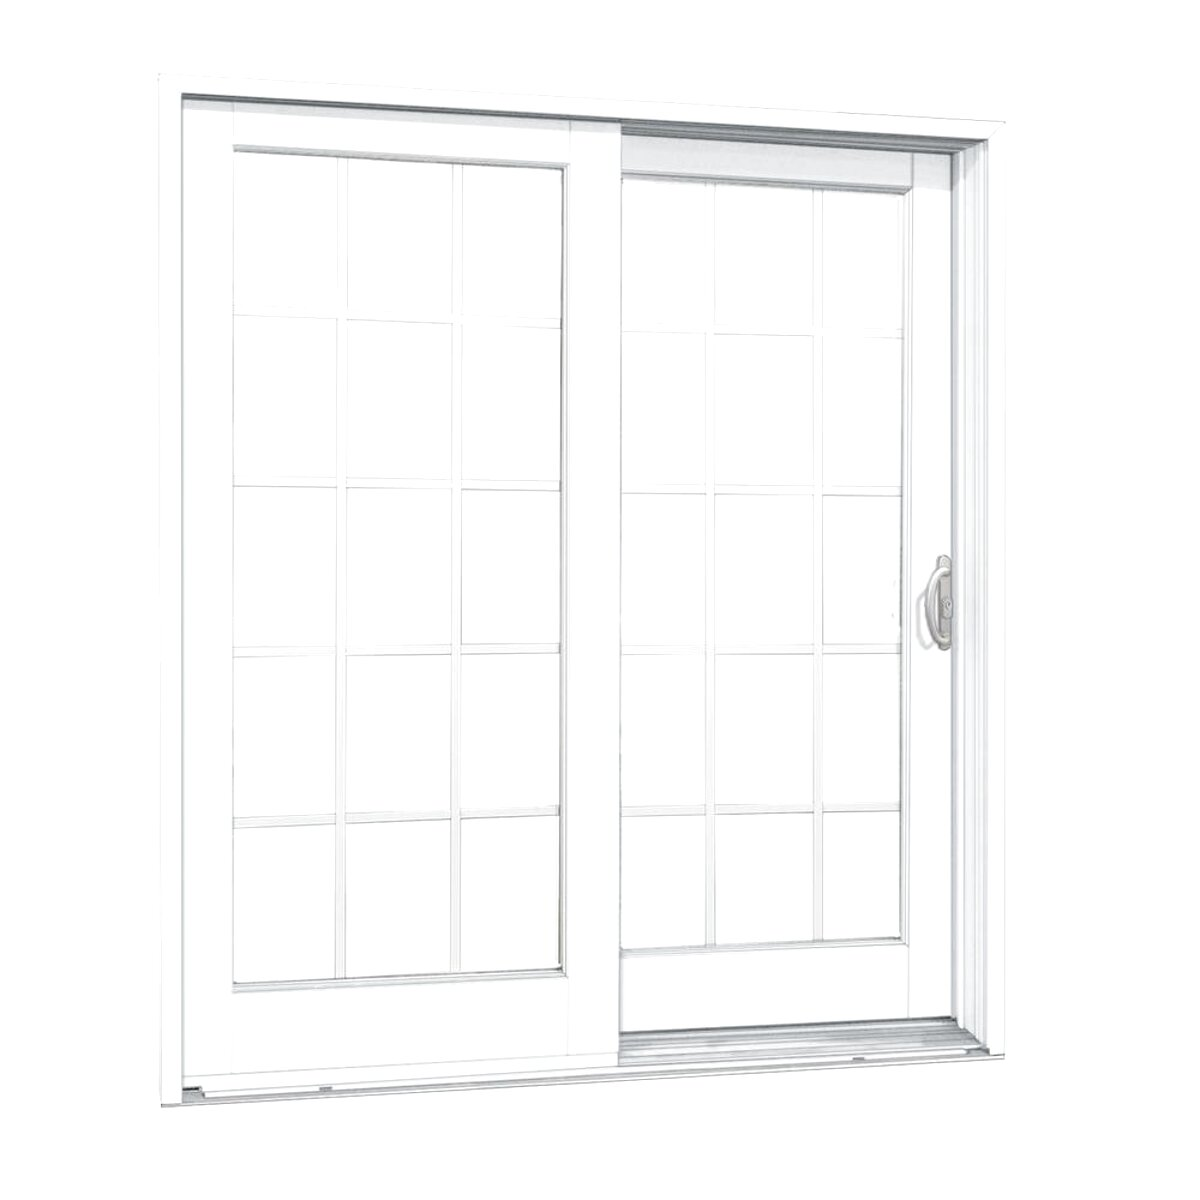 Sliding Patio Doors For Sale Only 2 Left At 60